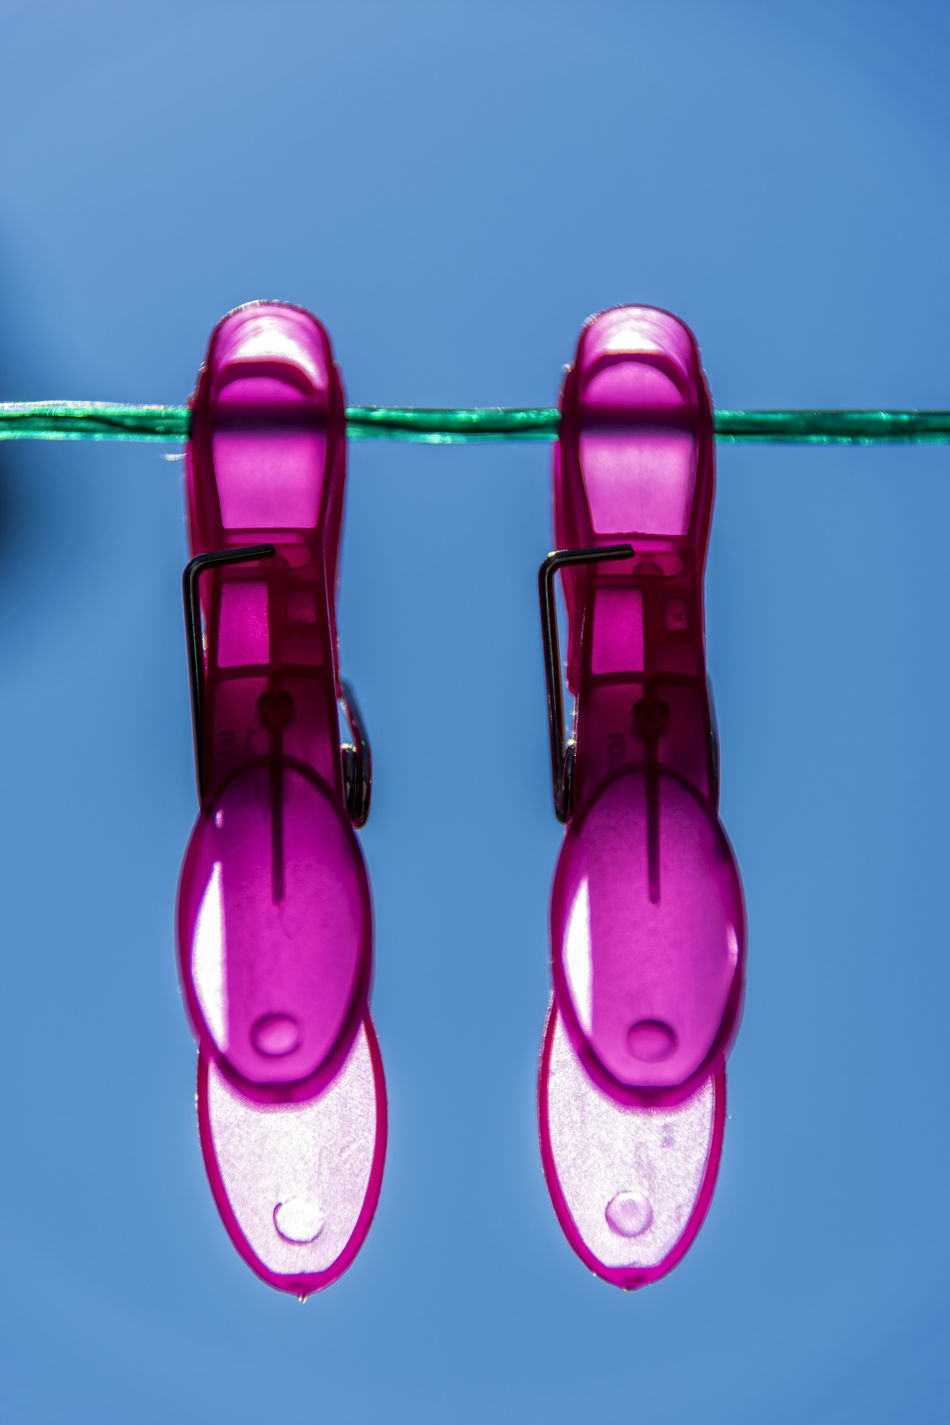 Magenta Blue Blue Background Blue Sky Close-up Clothes Pegs Clothesline Colored Background Day Green Line Laboratory No People Outdoor Pink Color Refraction